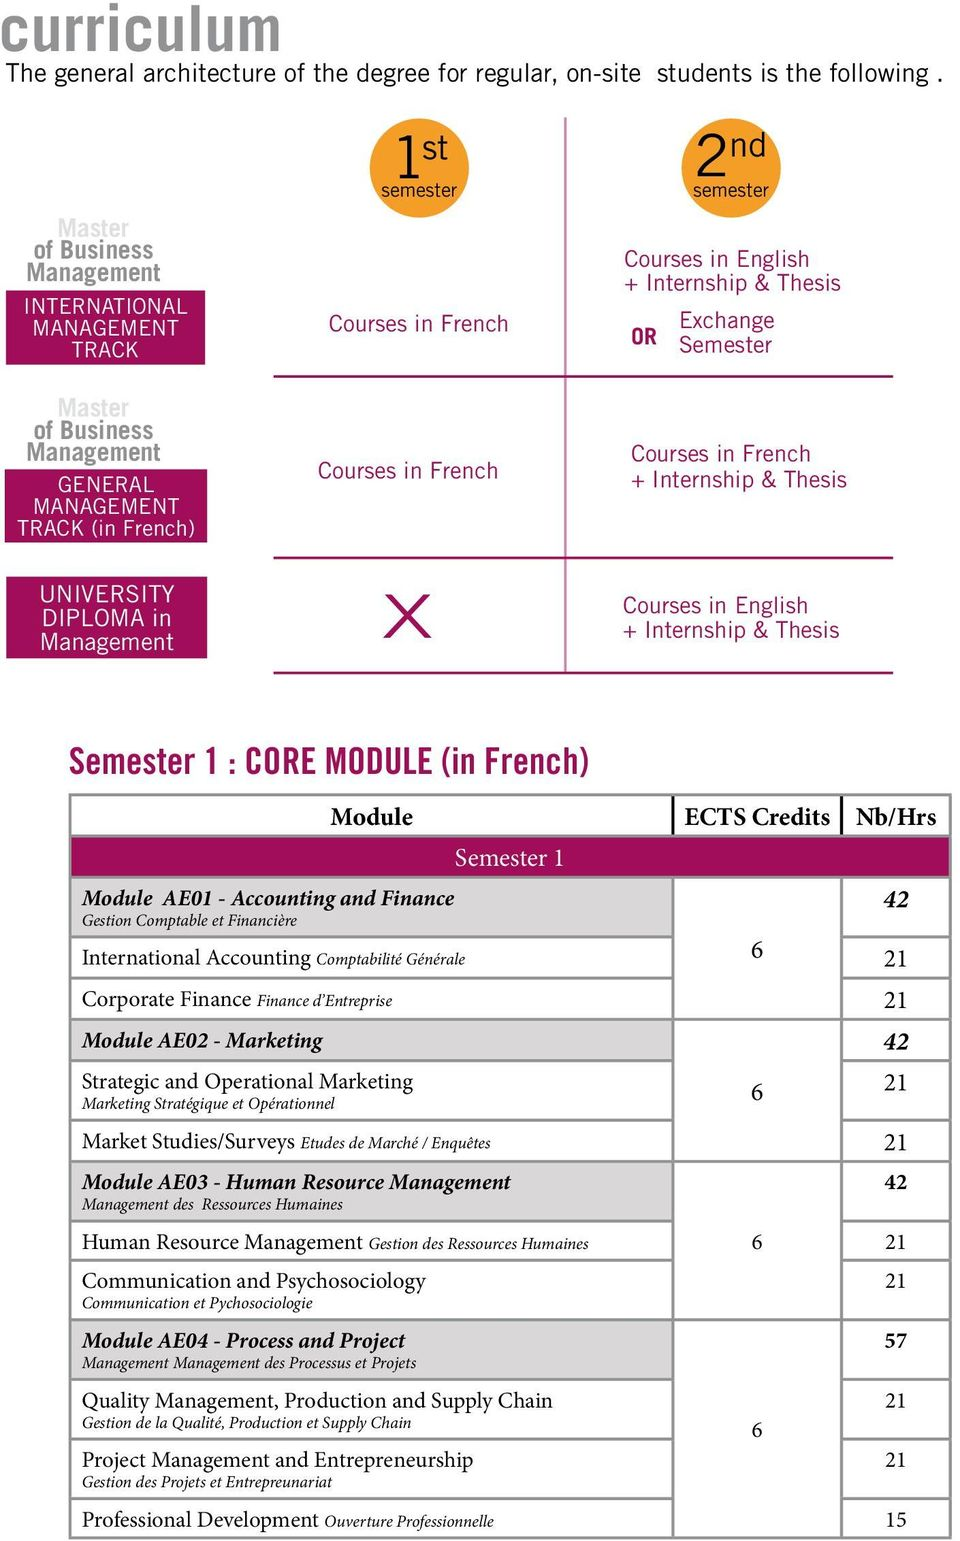 UNIVERSITY DIPLOMA in Courses in French X Courses in French + Internship & Thesis Courses in English + Internship & Thesis Semester 1 : CORE MODULE (in French) Module ECTS Credits Nb/Hrs Semester 1